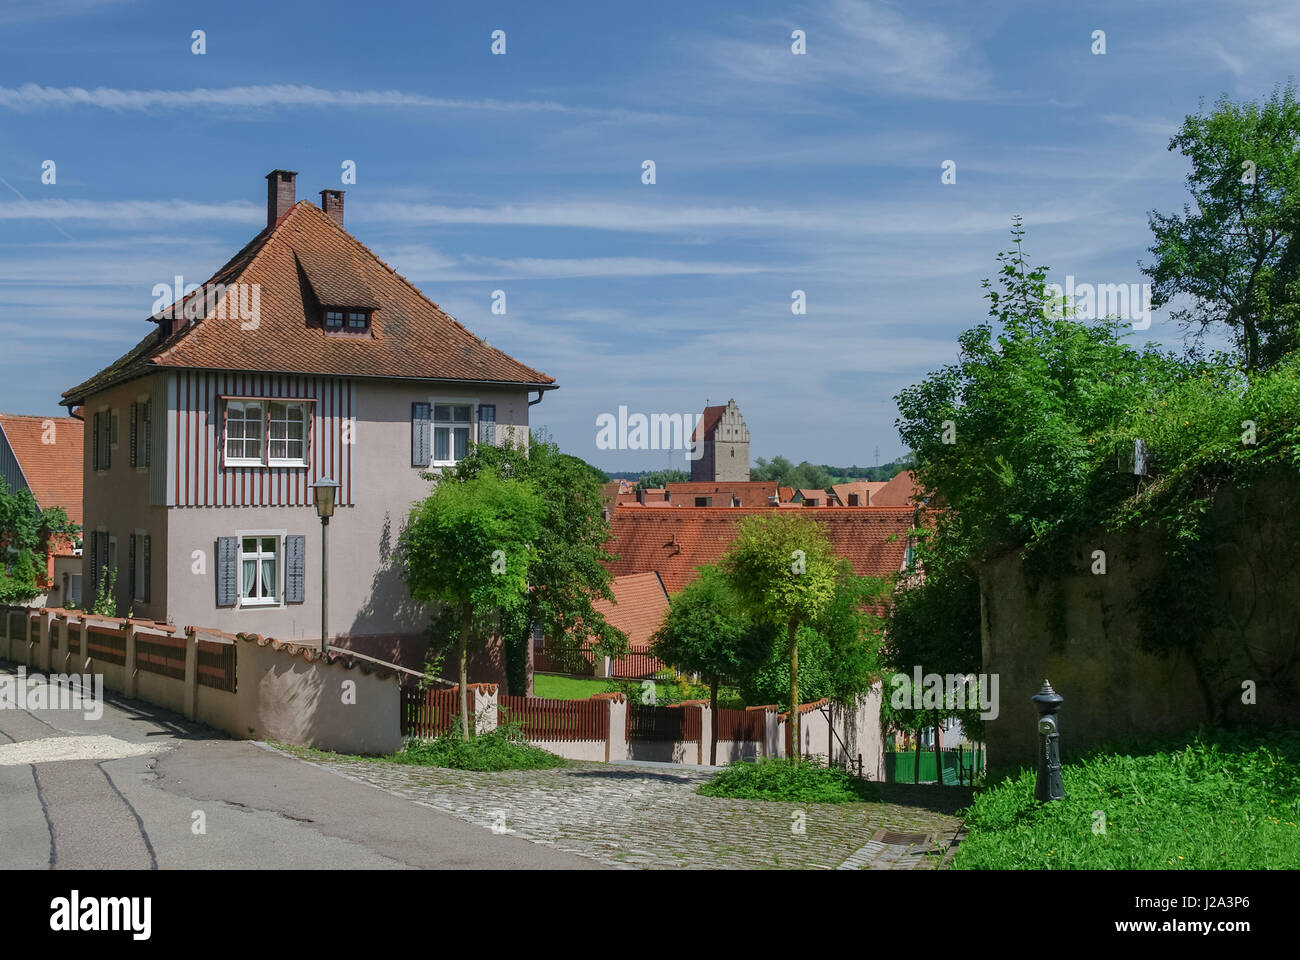 Street view of Dinkelsbuhl, one of the archetypal medieval towns on the German Romantic Road. Germany - Stock Image